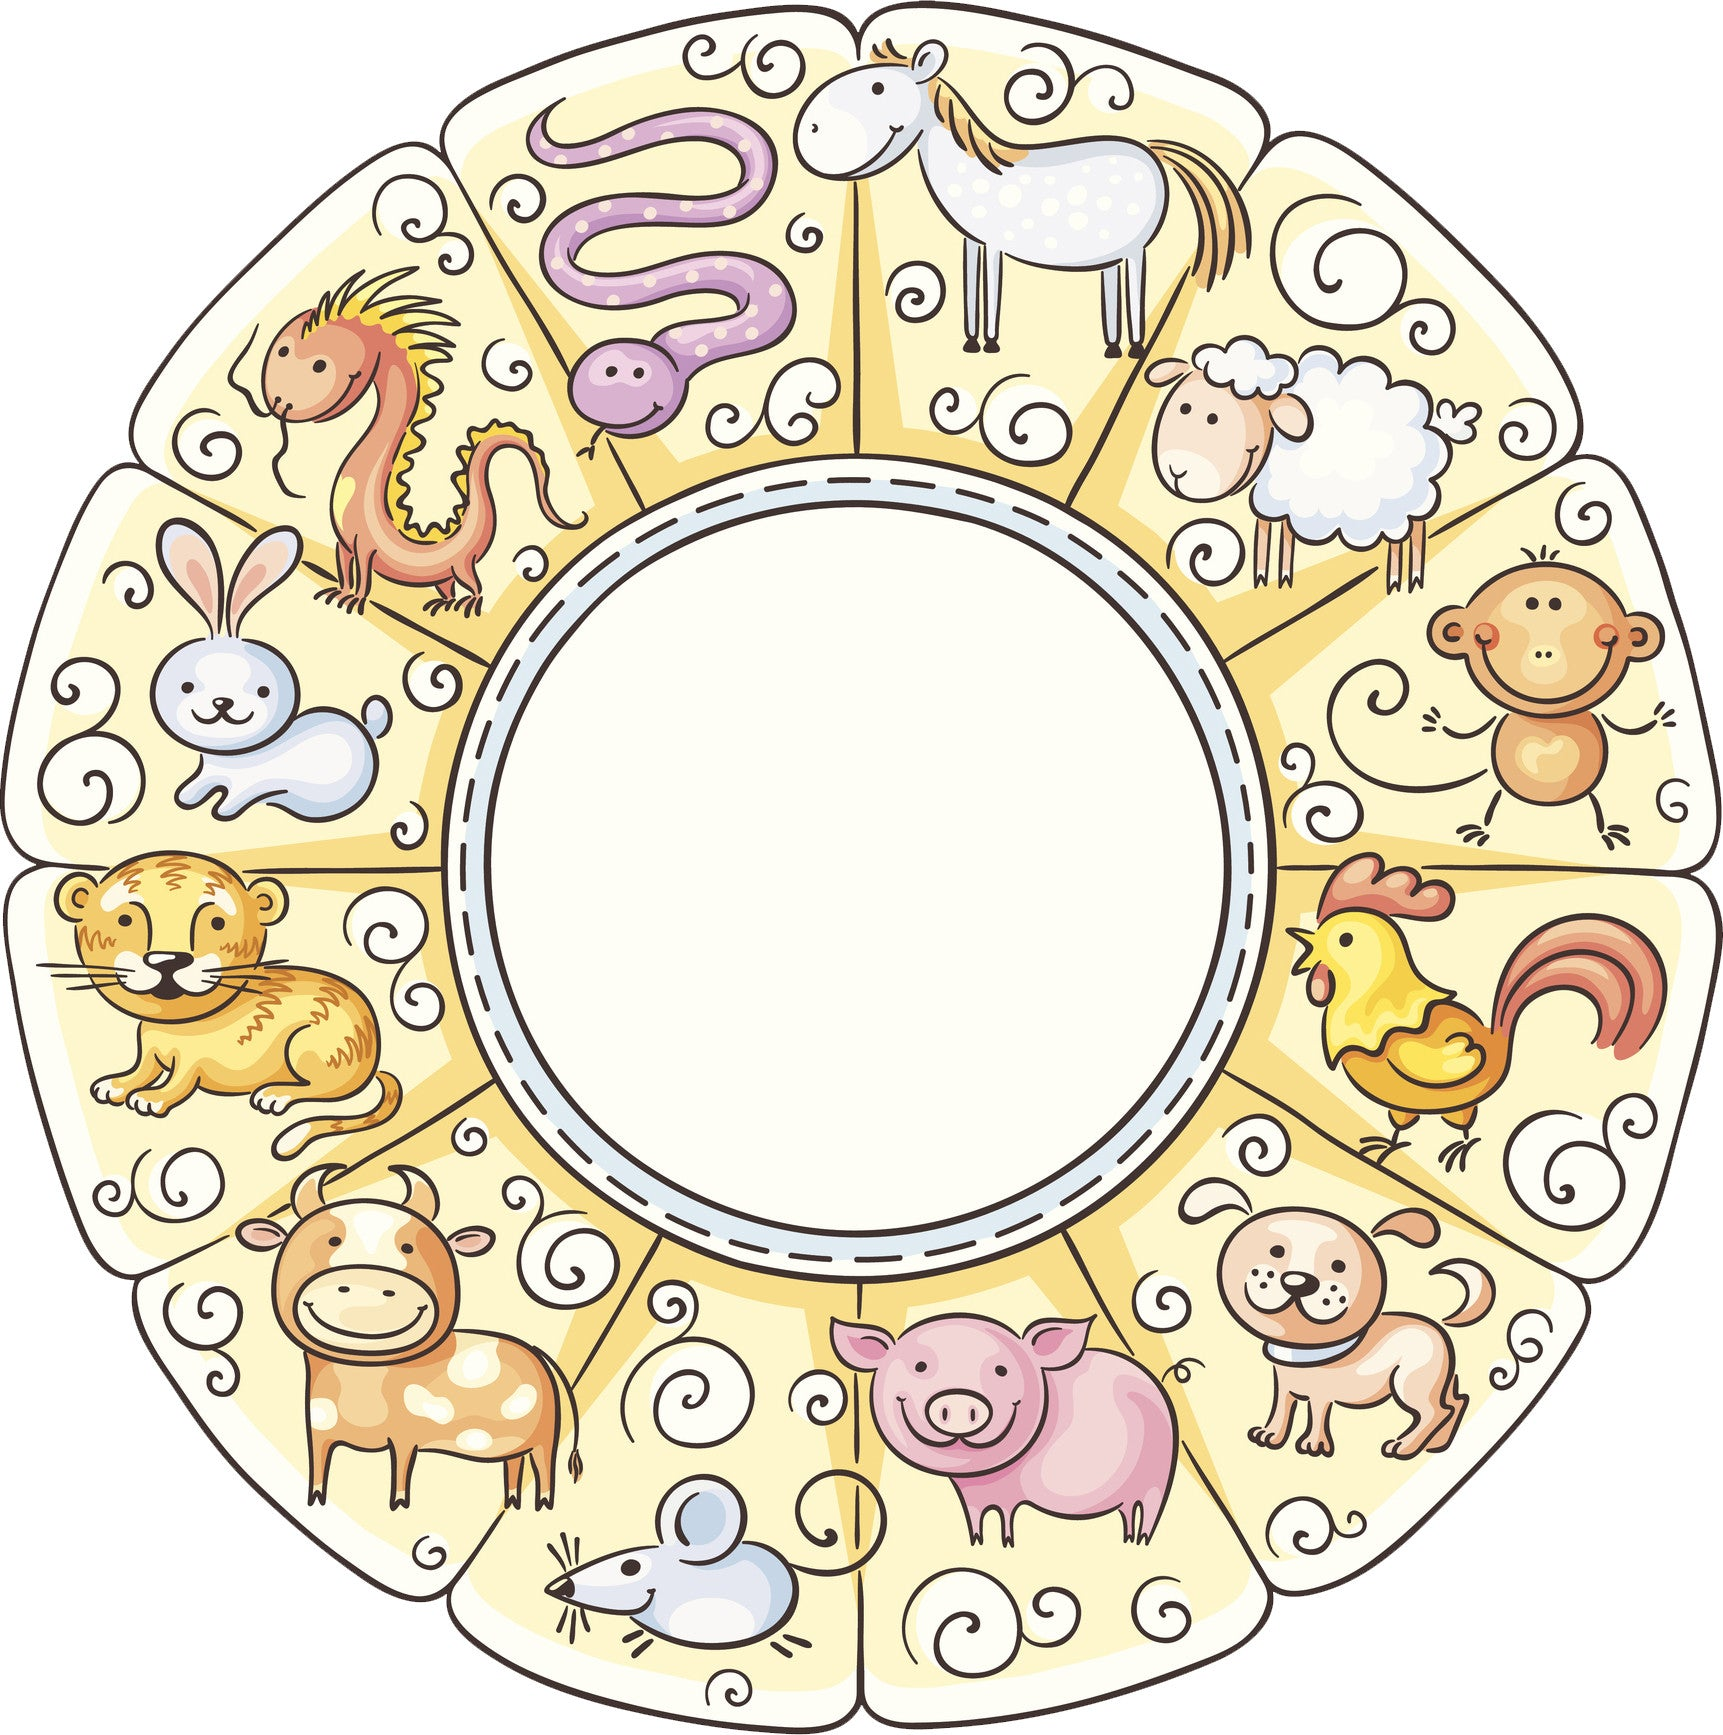 Cute Kawaii Chinese Zodiac Sign Pen Art Cartoon Wheel Icon Vinyl Decal Sticker